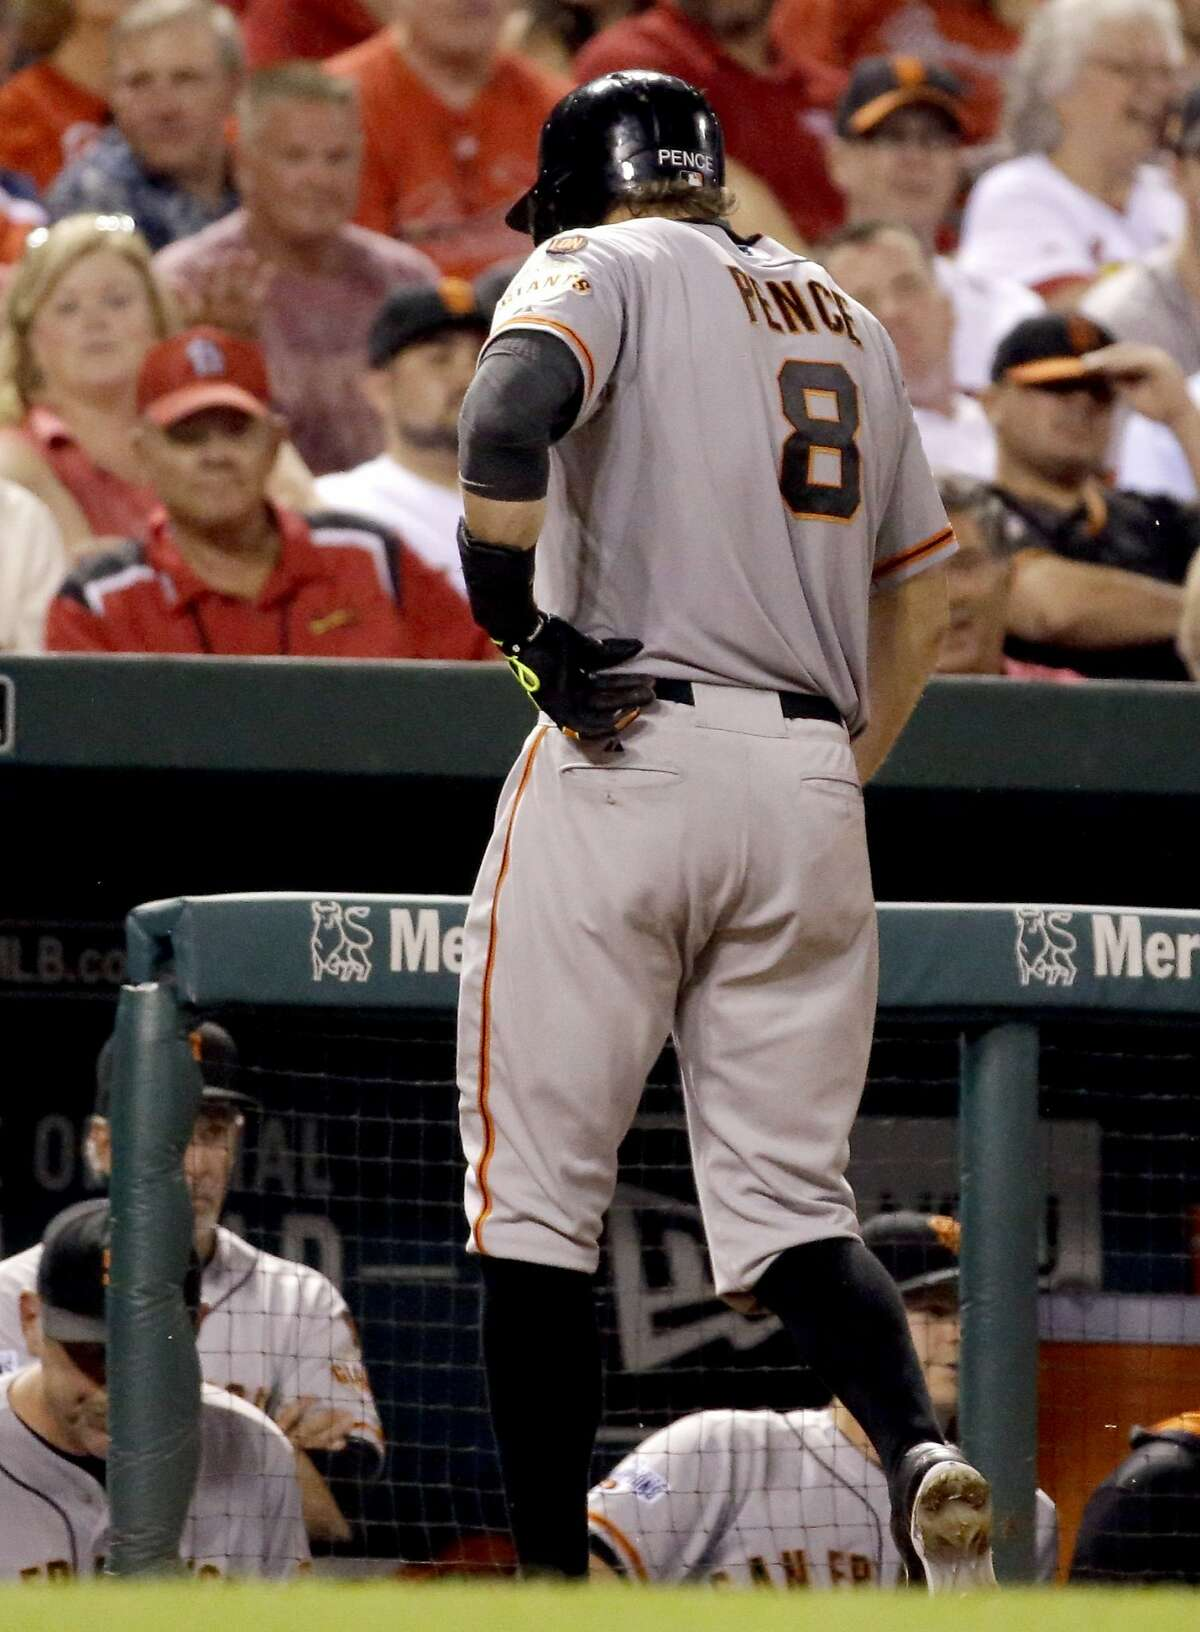 San Francisco Giants' Hunter Pence grabs his side as he heads to the dugout after flying out during the ninth inning of a baseball game against the St. Louis Cardinals Monday, Aug. 17, 2015, in St. Louis. The Cardinals won 2-1. (AP Photo/Jeff Roberson)